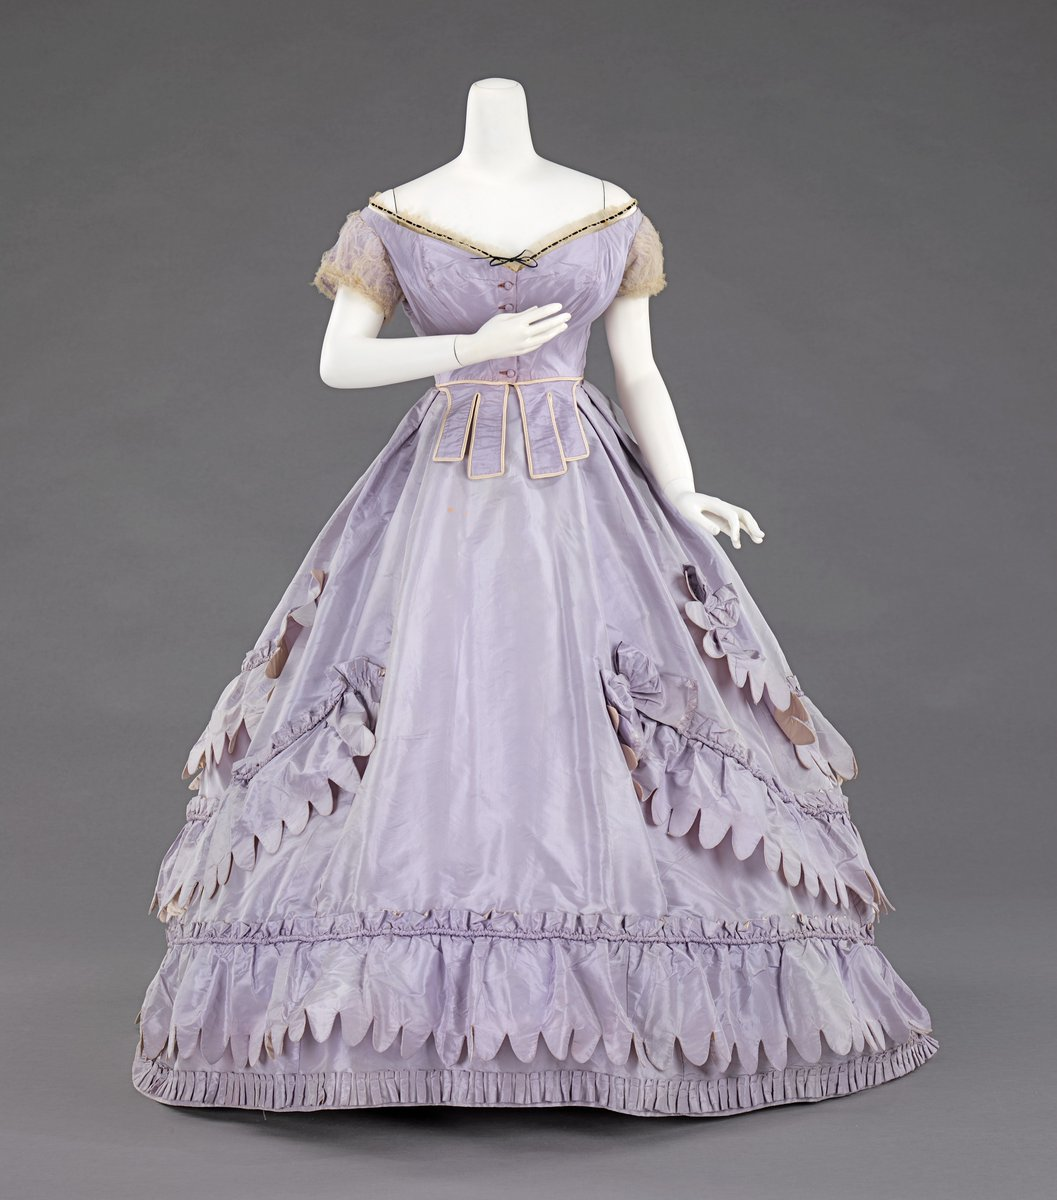 A lilac-hued gown with scalloped edges and a typical dropped shoulder design, lace cap-sleeves, and layer cake style. Narrow waist, darts at the waist as well, trimmed in yellow. But there are lots of little things happening all over the place that make it rather exceptional. Met Museum, public domain.